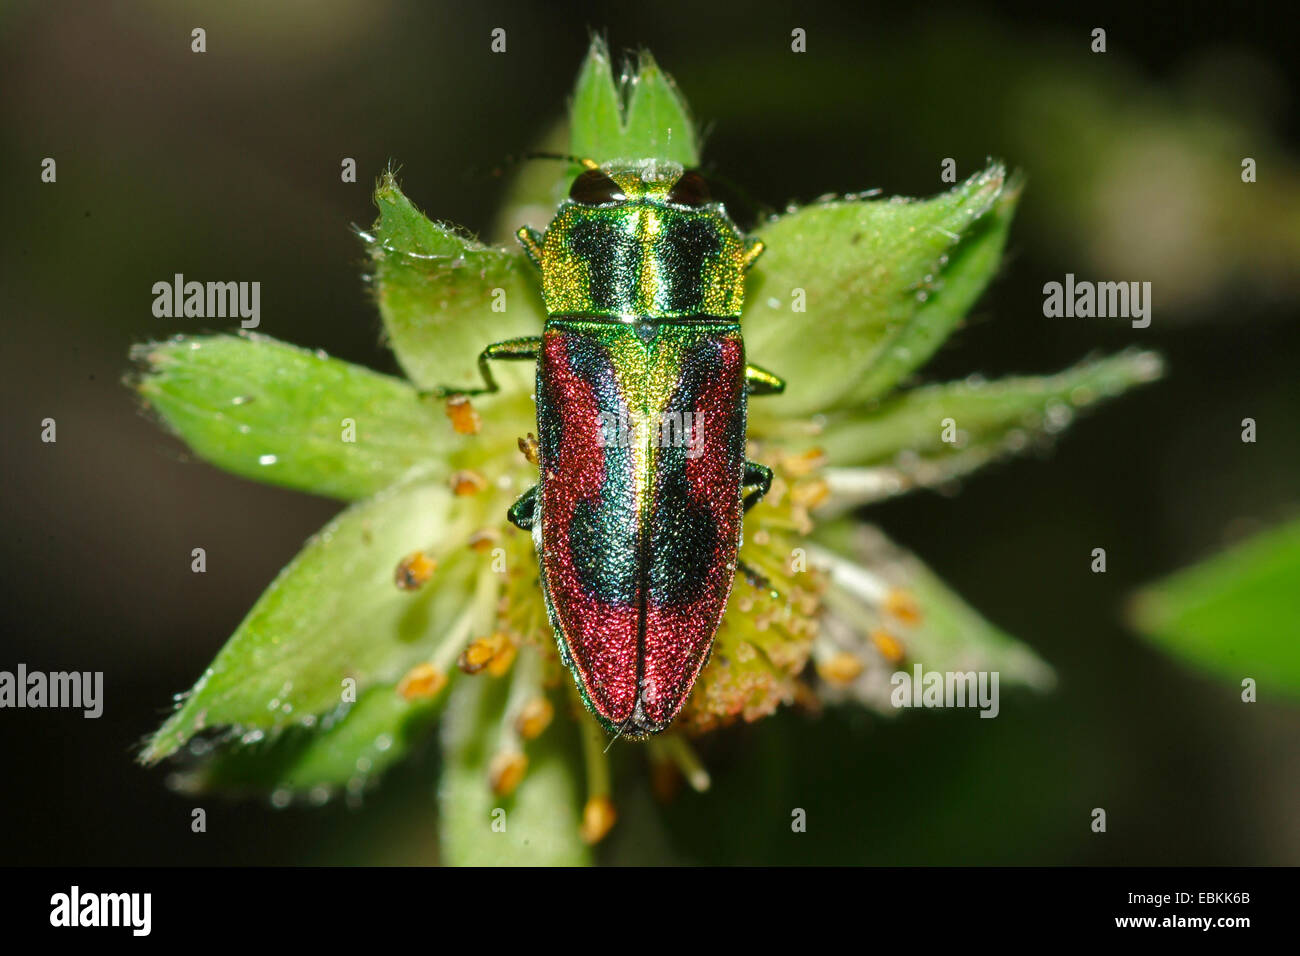 Jewel Beetle (Anthaxia candens), on a flower, Germany - Stock Image